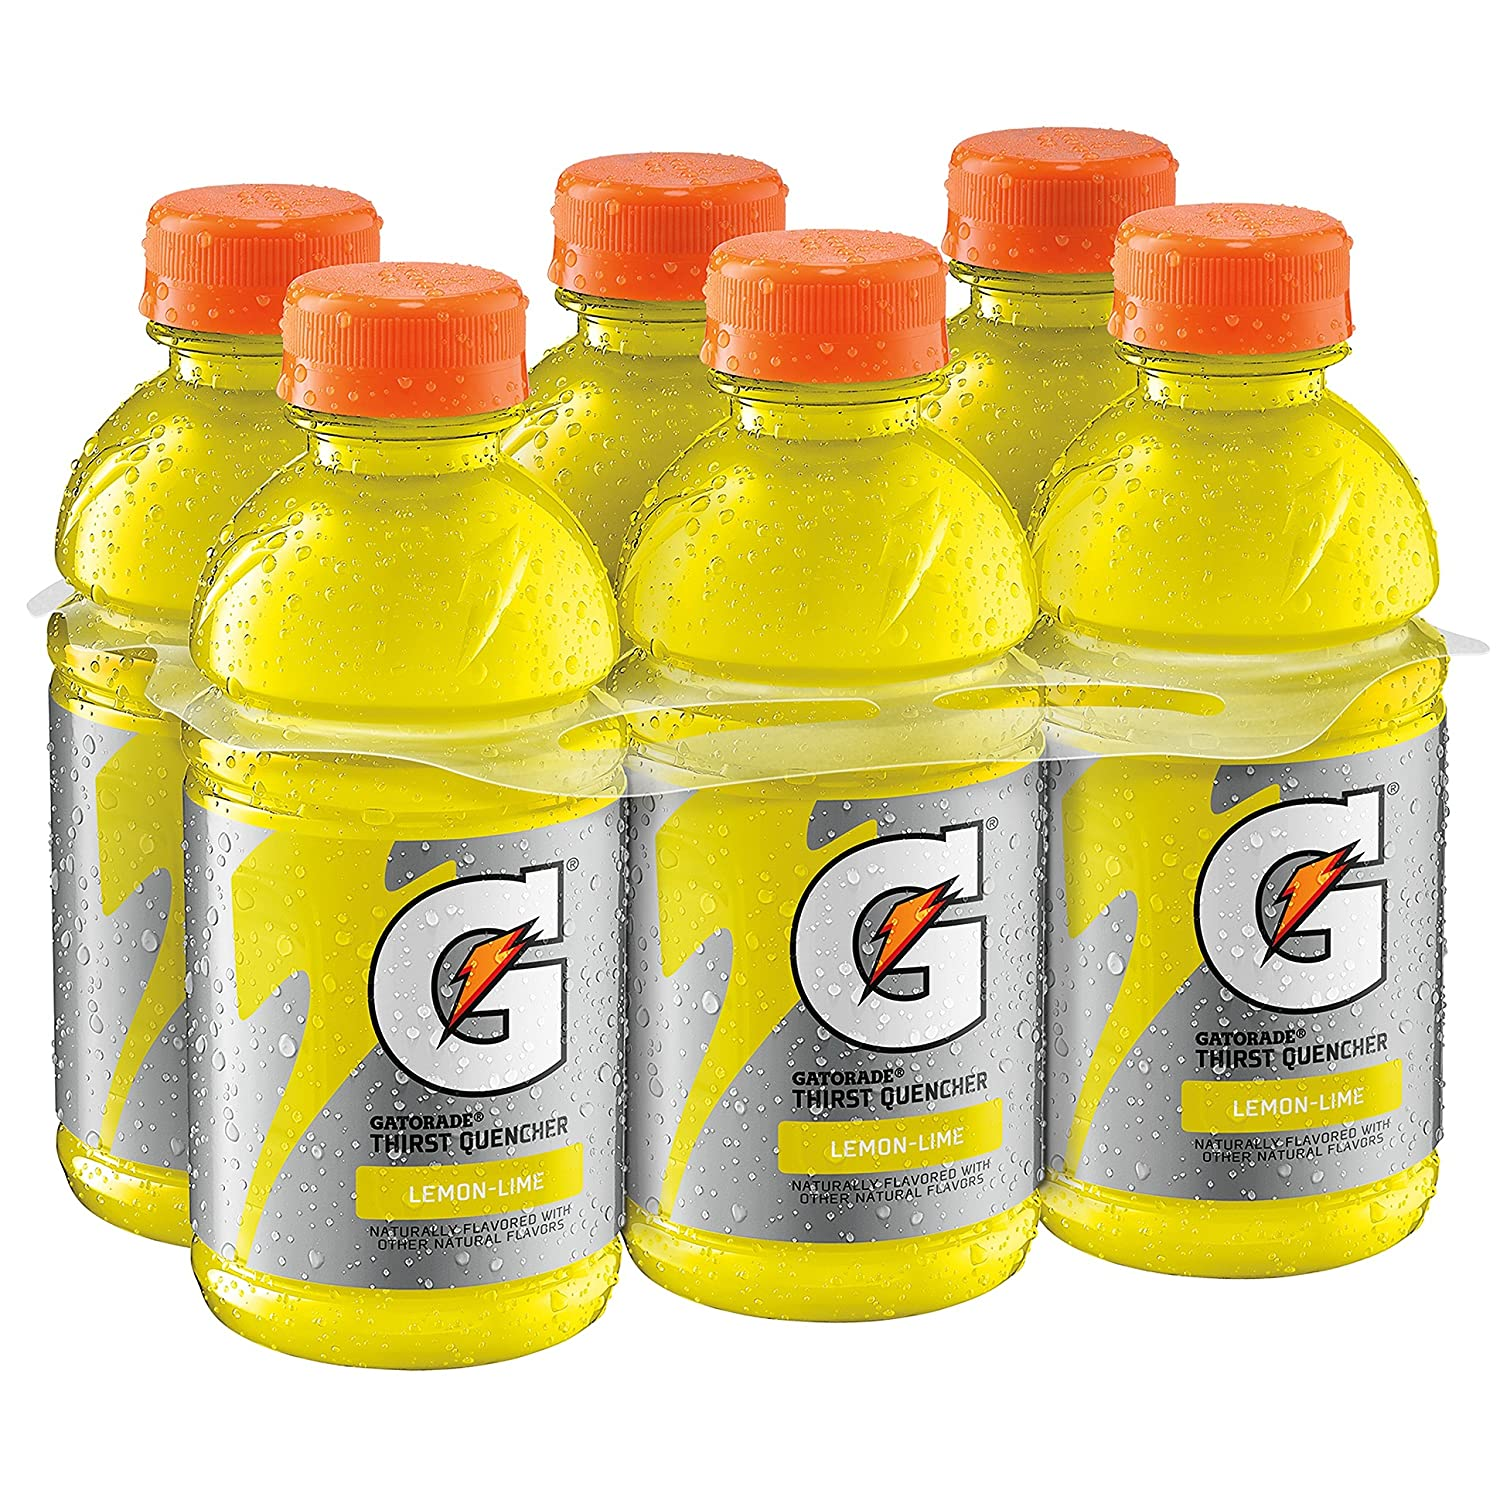 Gatorade Thirst Quencher, Lemon Lime, 12 Ounce (Pack of 6)